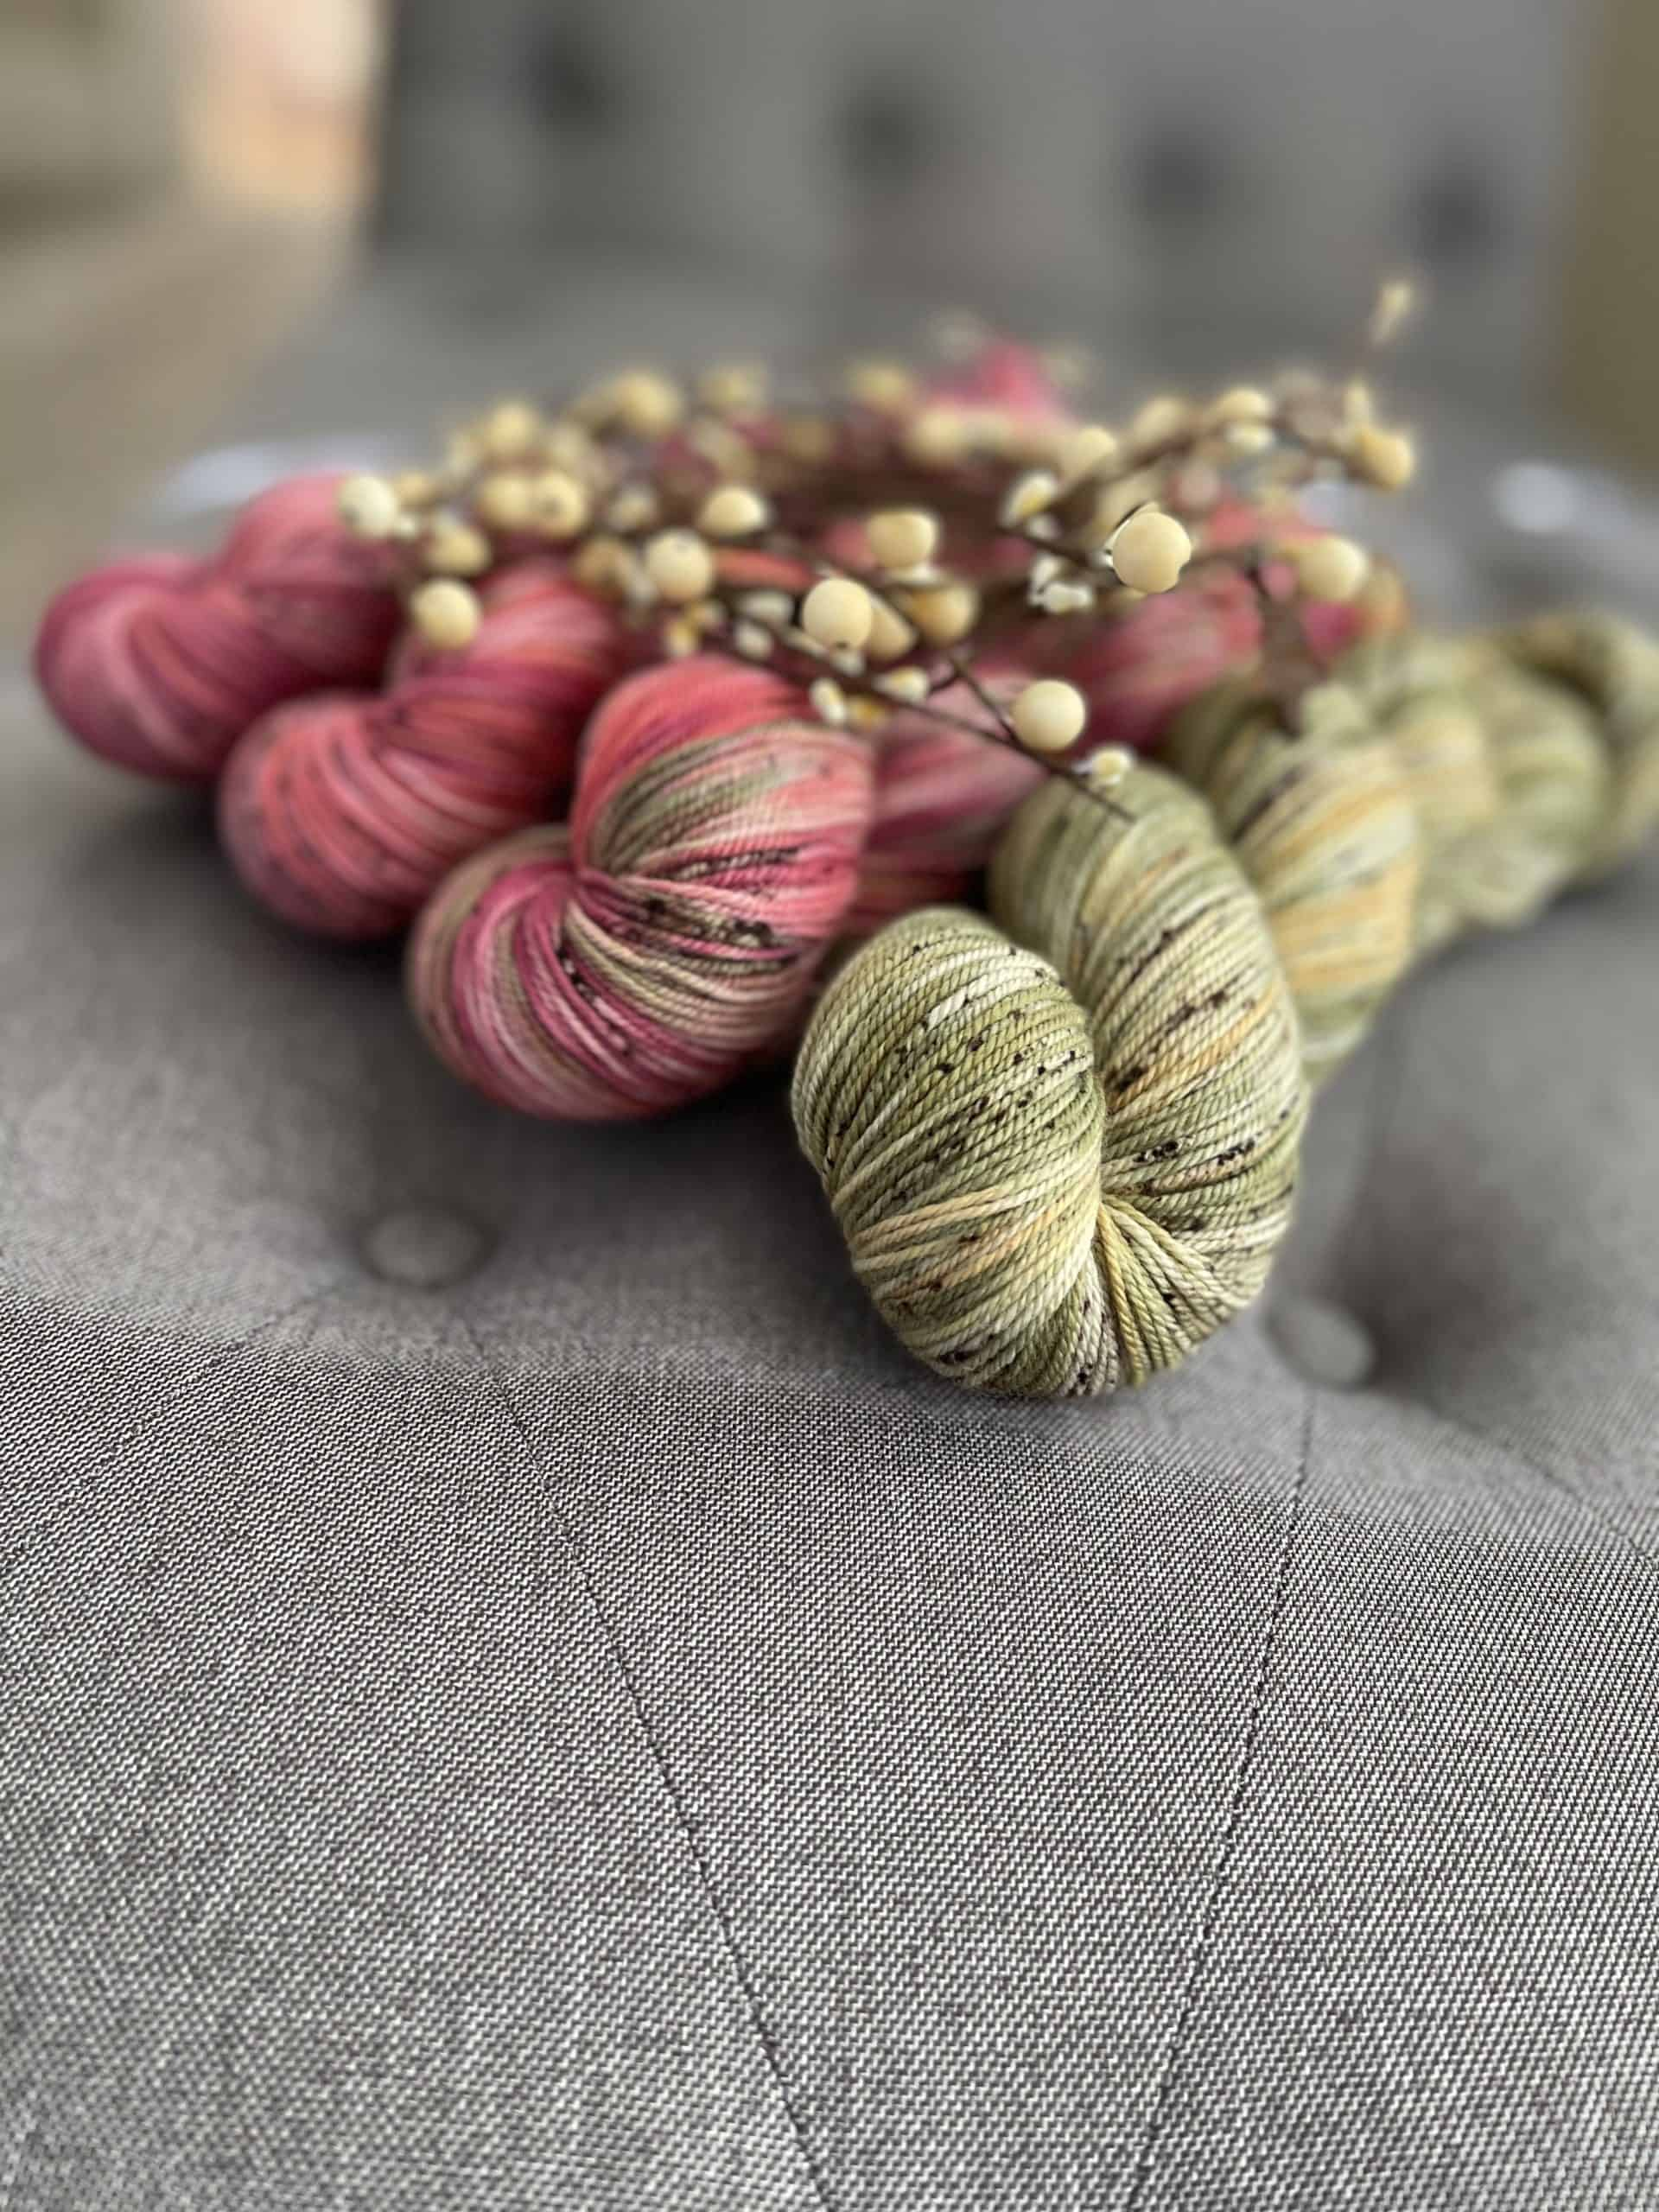 Pink and green yarn with branches on top.